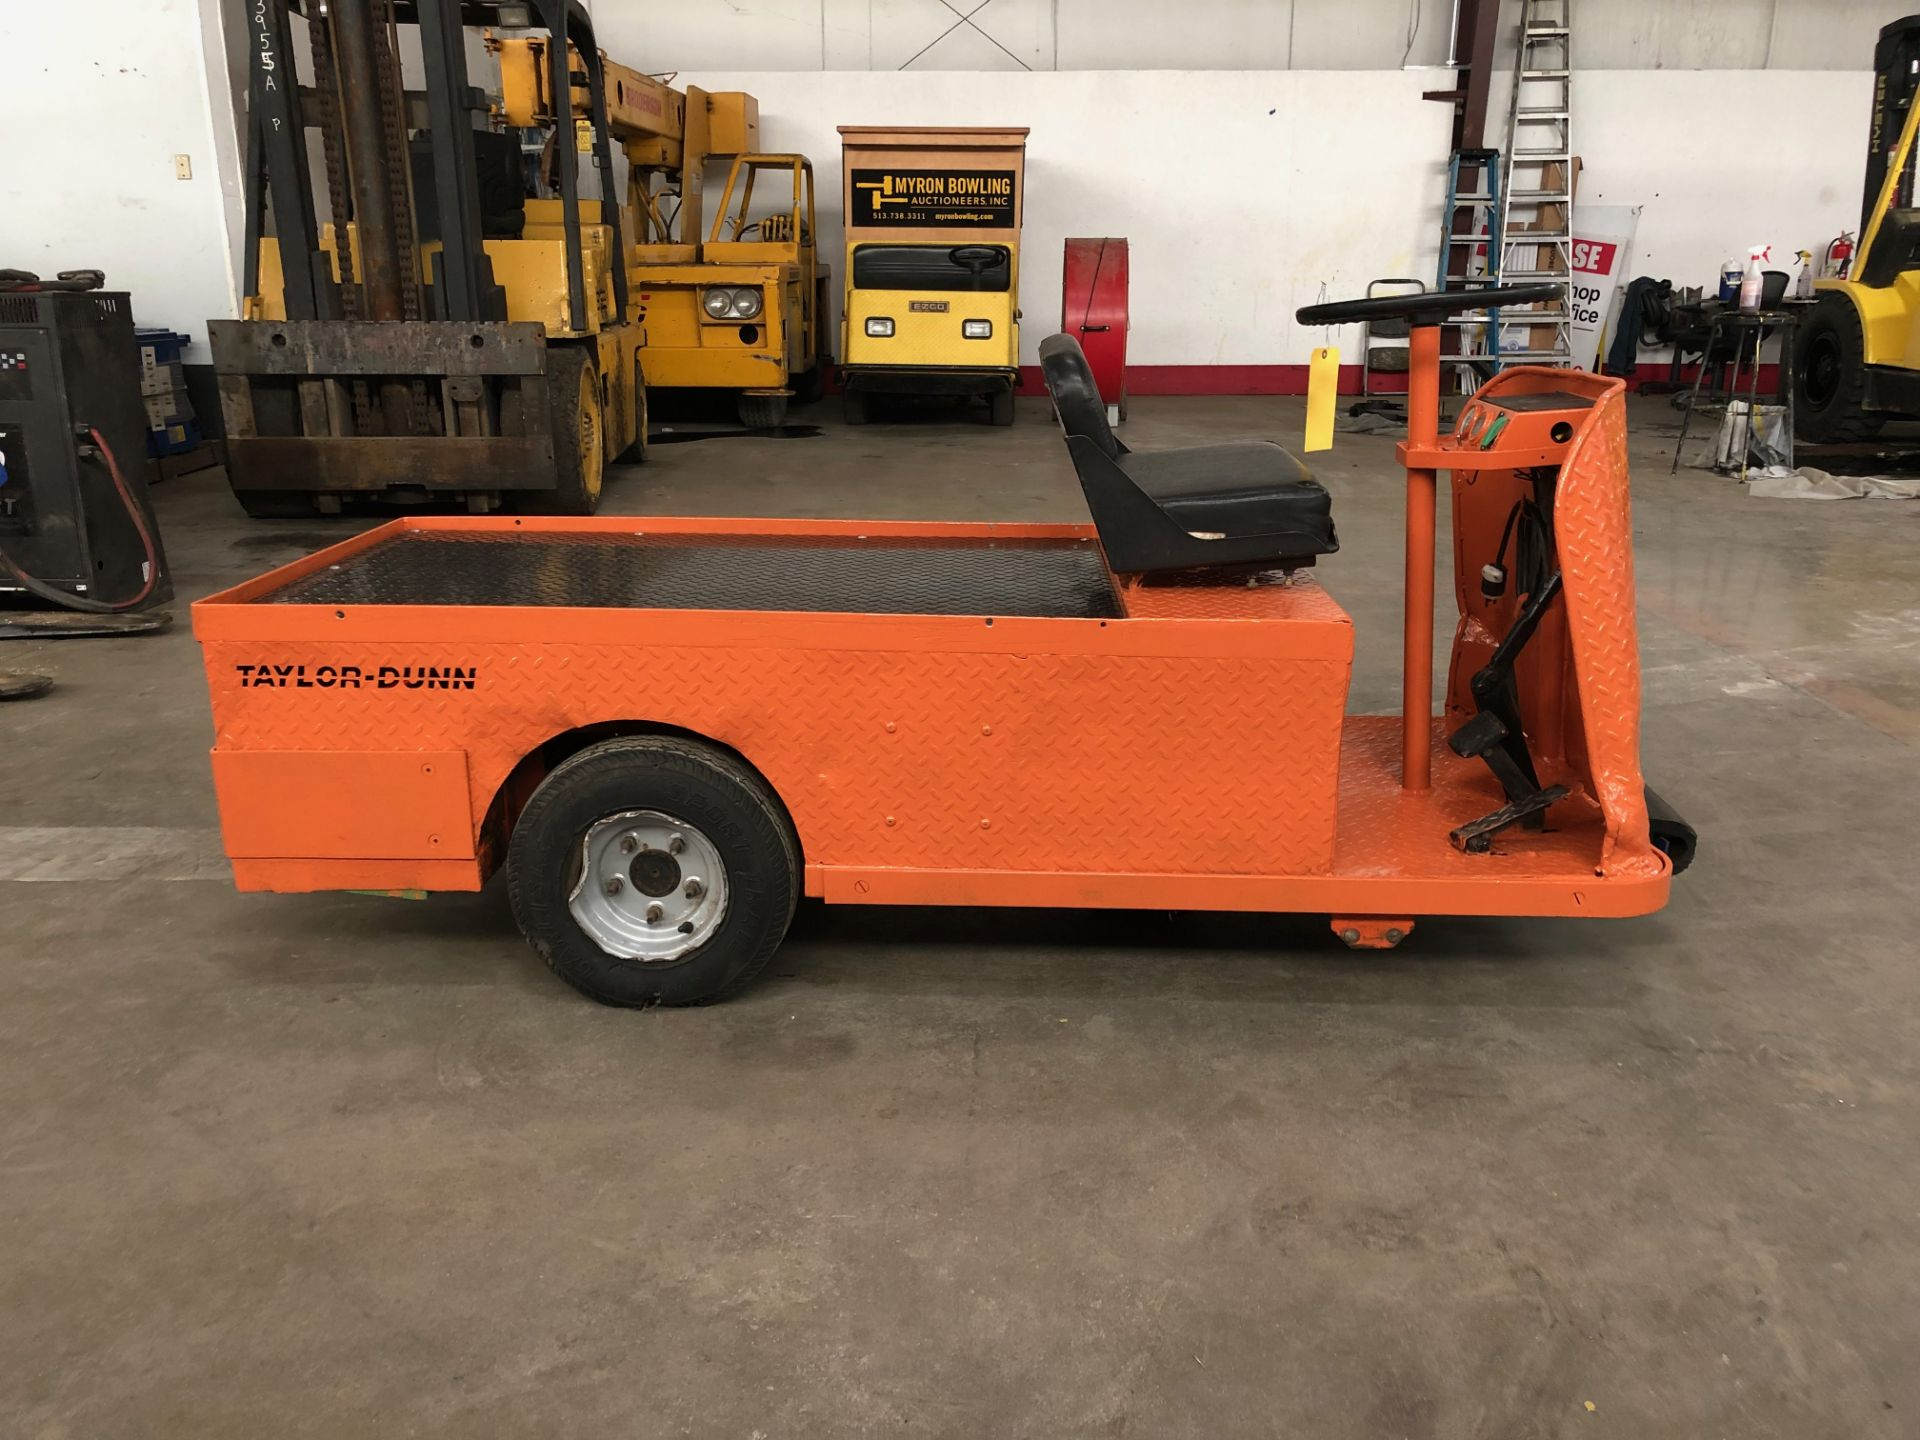 Lot 25A - 2007 TAYLOR-DUNN 3-WHEEL ELECTRIC PERSONNEL CART, MODEL: C0-014-32, WITH 24-VOLT